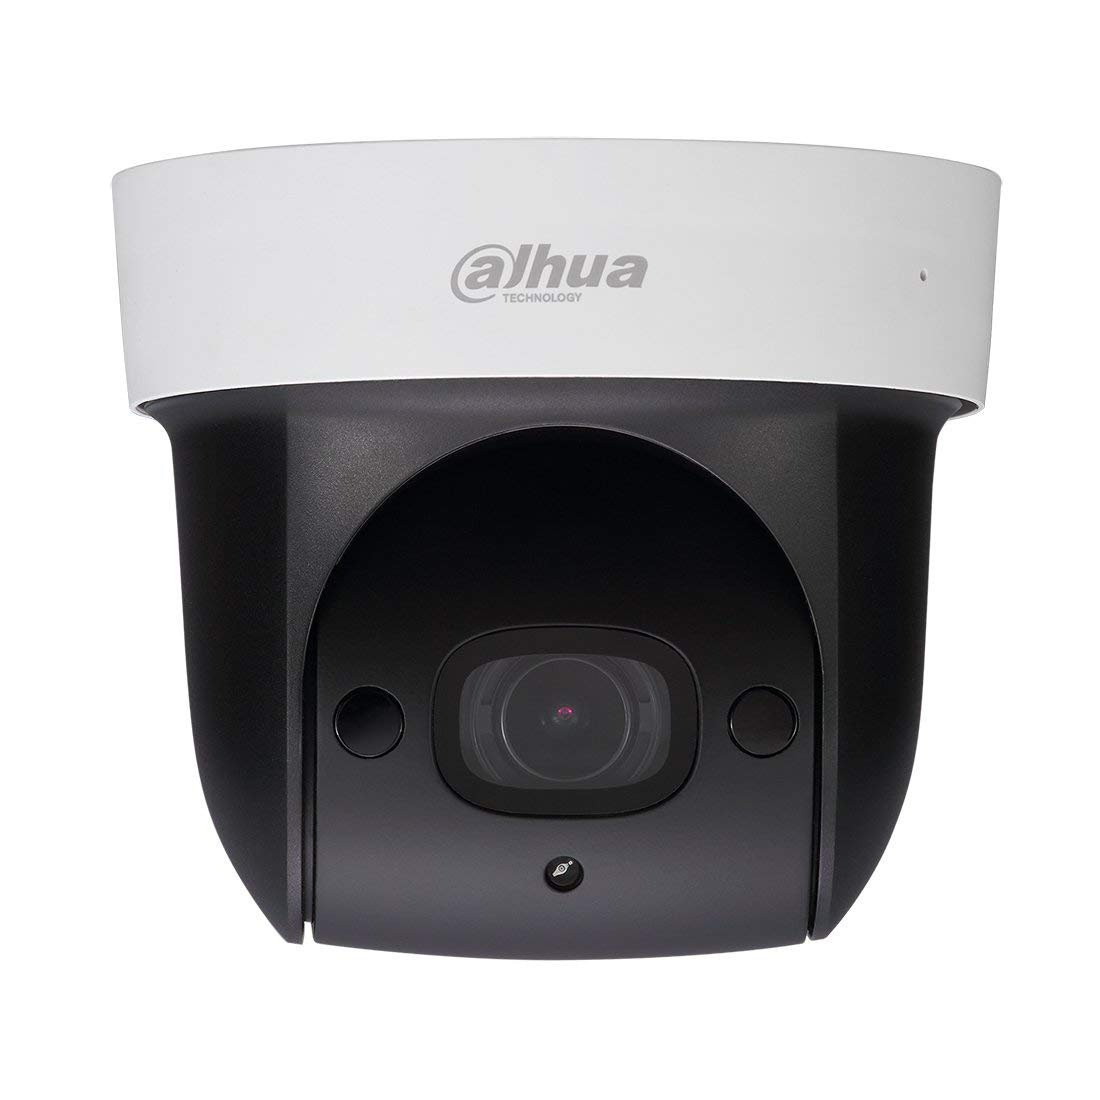 Dahua SD29204T-GN-W 1080P PTZ WiFi IP Security Camera 4X Optical Zoom/Pan/Tilt,2MP HD High Speed Dome Indoor Wireless IP Camera with Built-in Mic for Audio,SD Card Slot,30m IR Night Vision,ONVIF